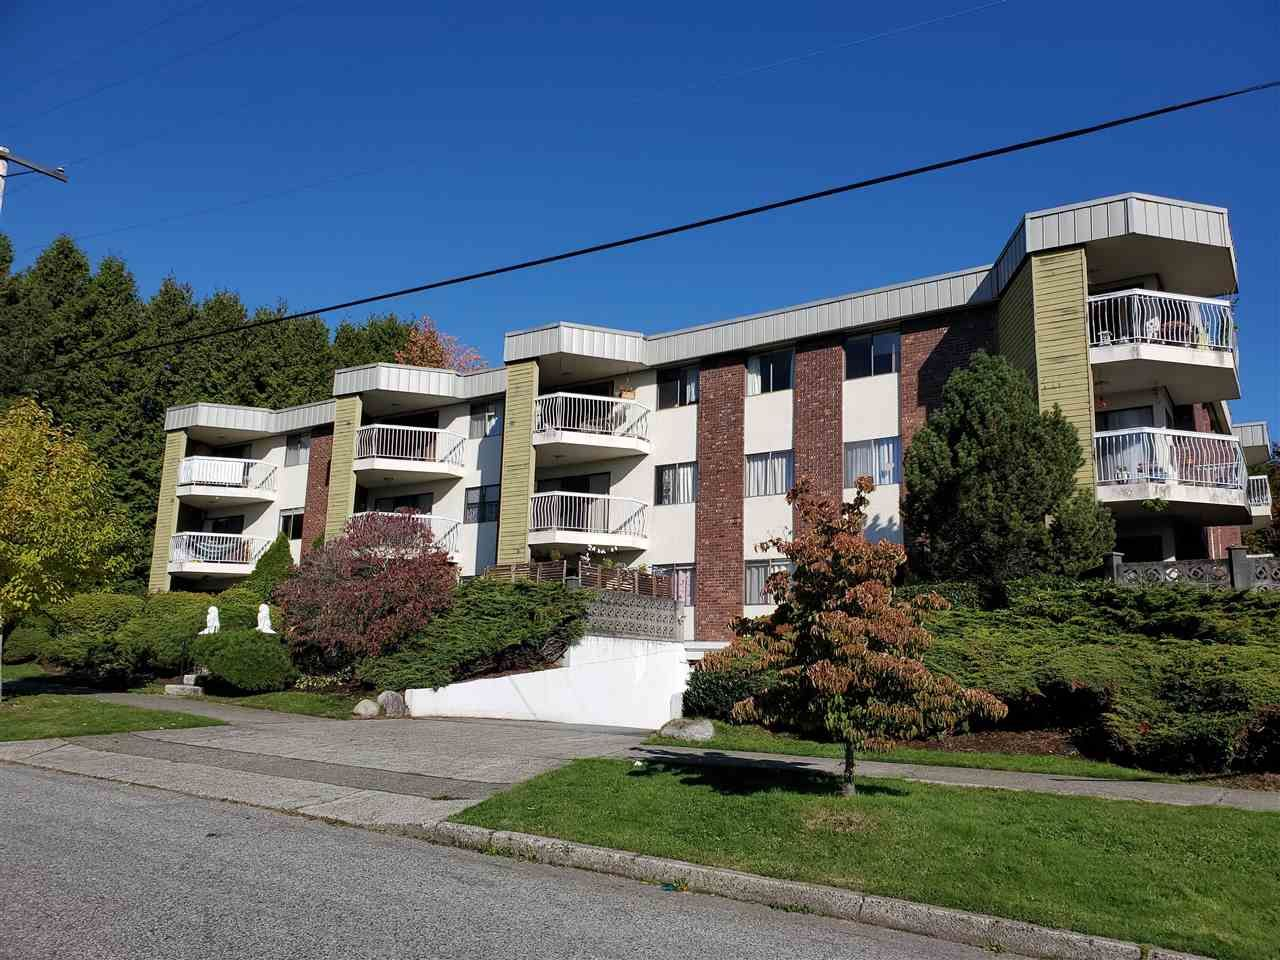 """Main Photo: 106 327 NINTH Street in New Westminster: Uptown NW Condo for sale in """"KENNEDY MANOR"""" : MLS®# R2579845"""